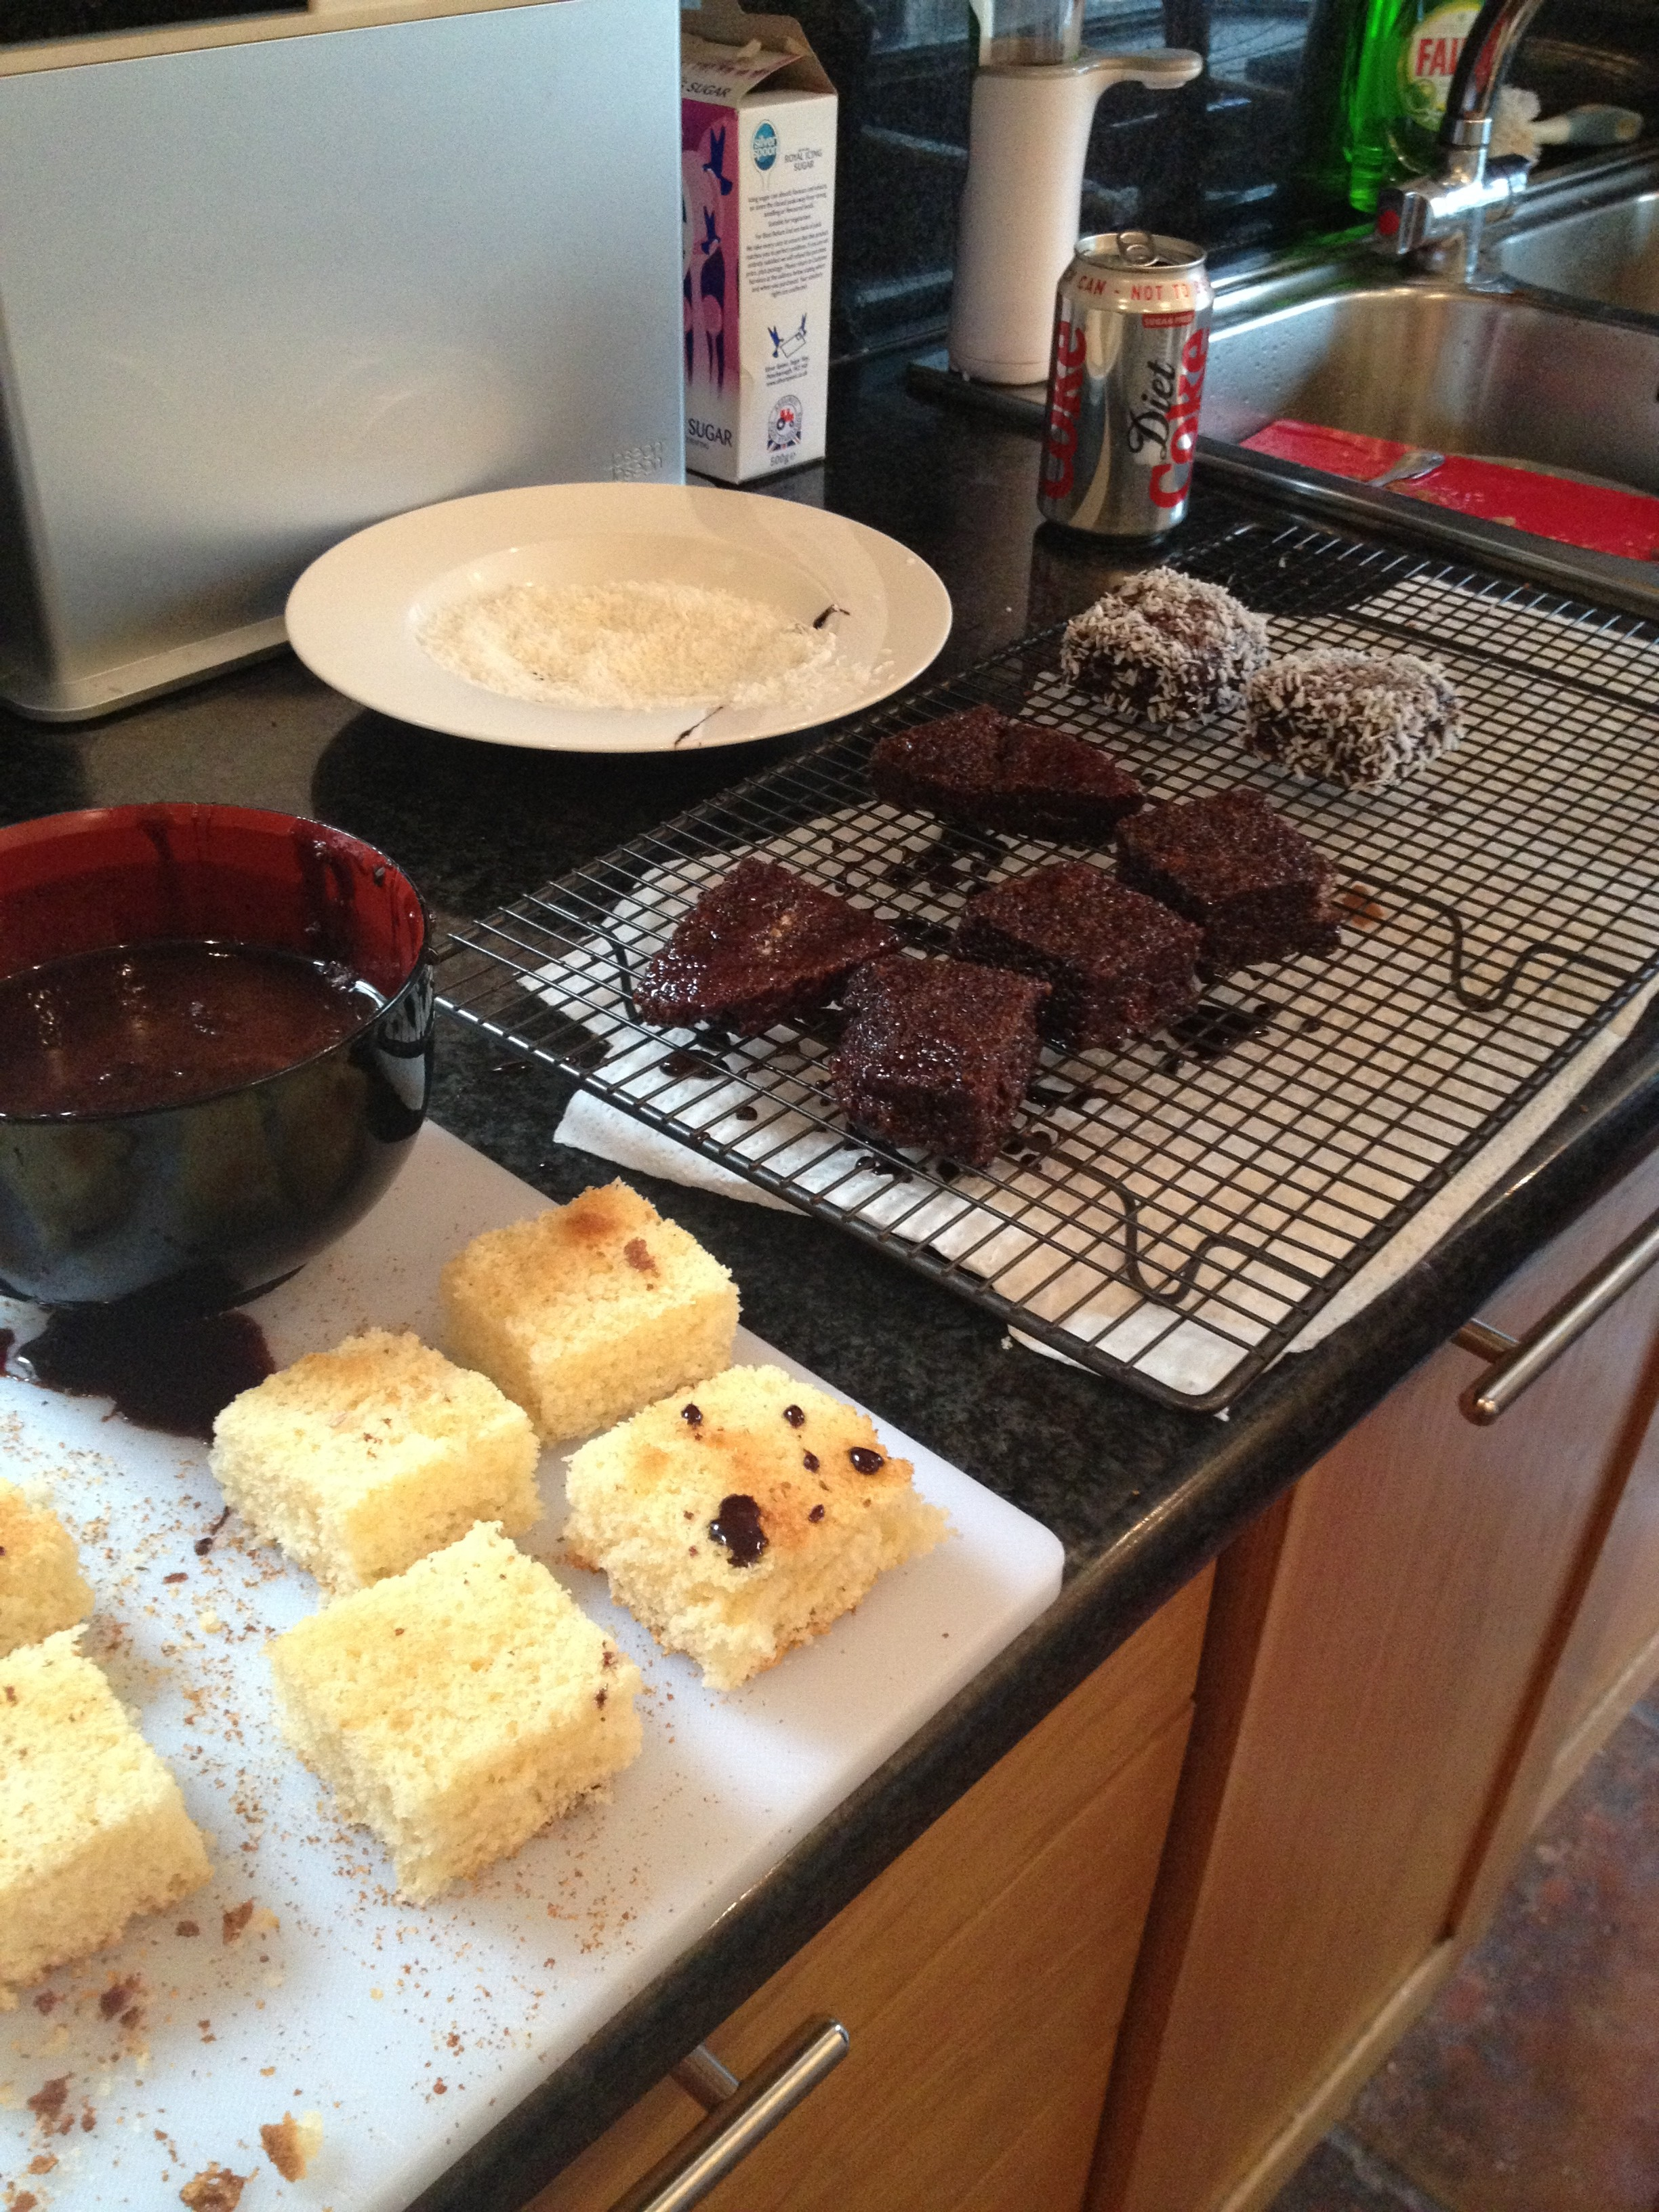 Historic moment: Lamington baking. I am more of a 'get-in-the-car-and-drive-to-the-shops' style of baker but lamingtons aren't easy to find in London so voila!